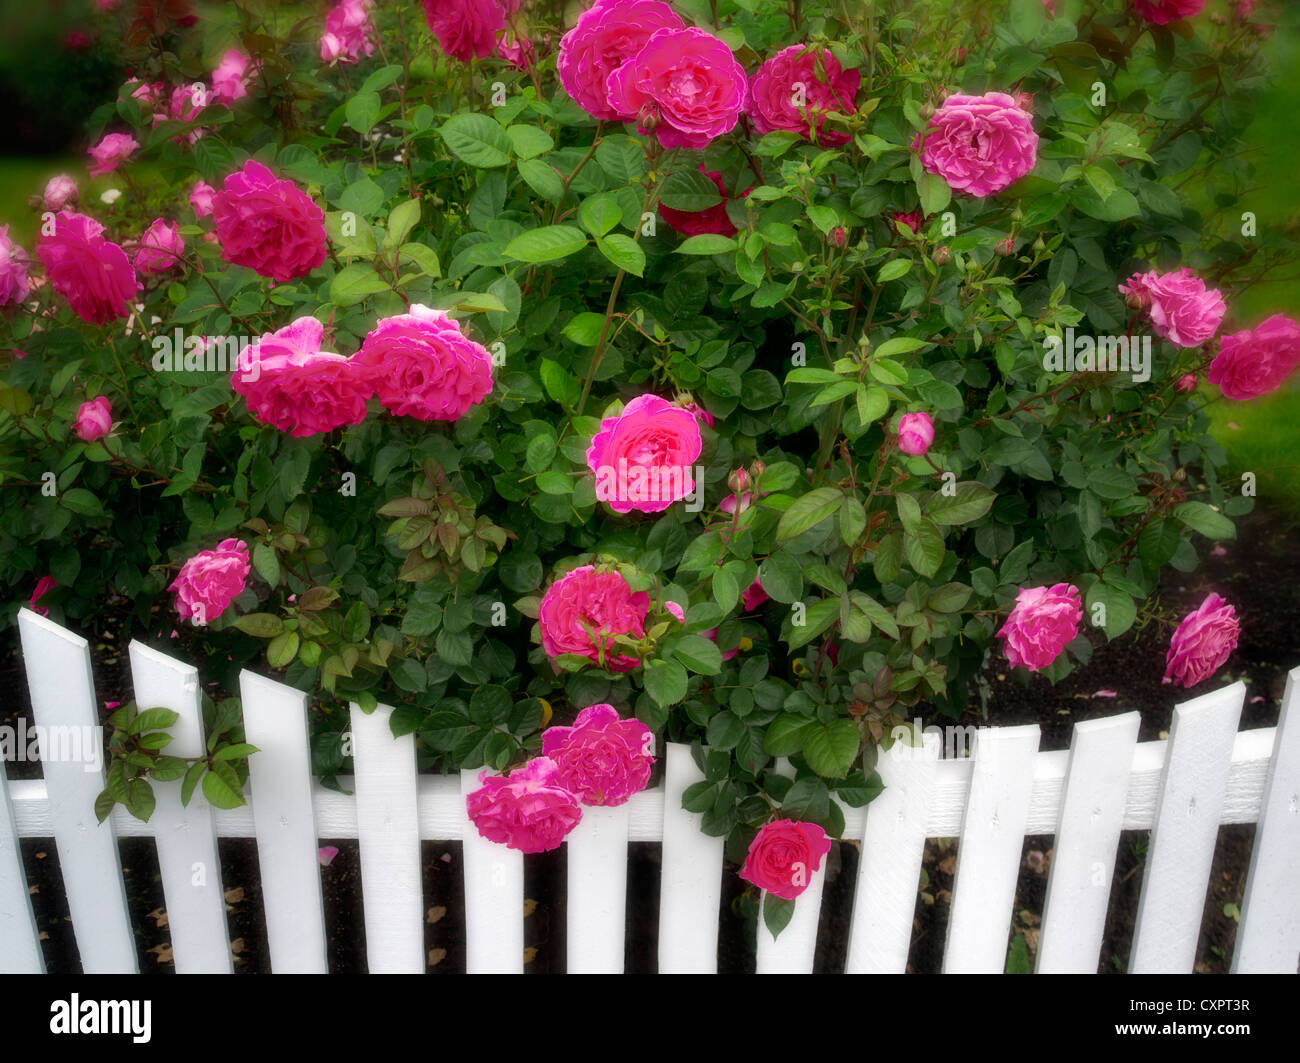 Roses growing near white picket fence. Heirloom Gardens. St. Paul, Oregon - Stock Image